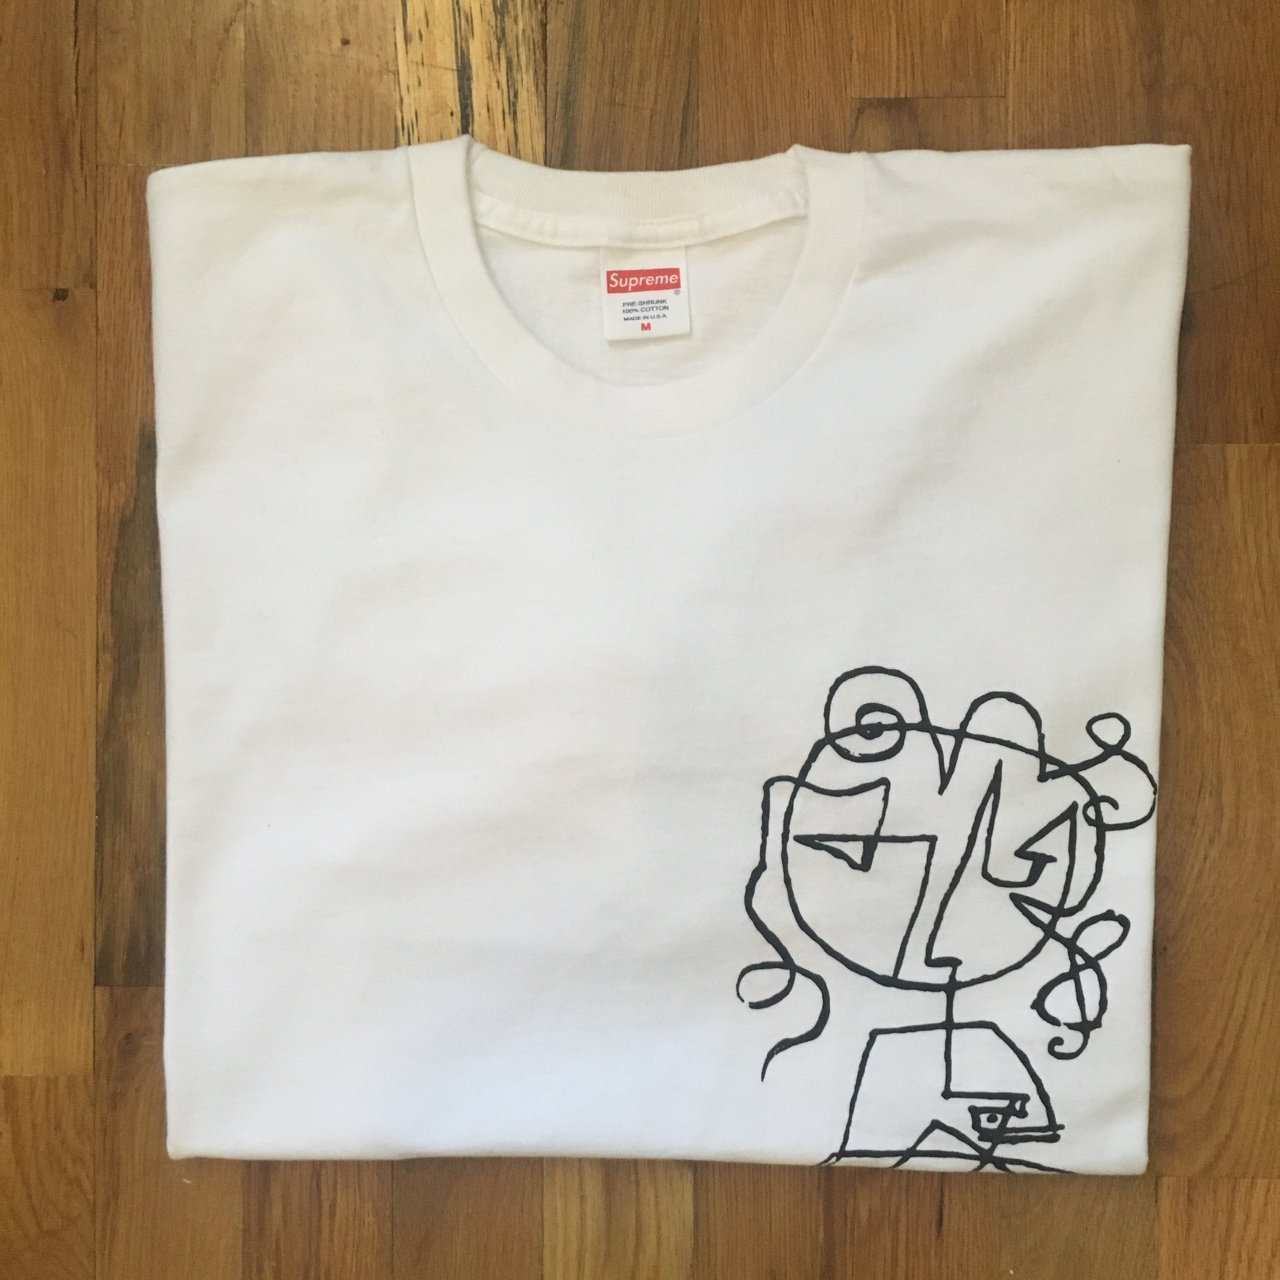 6709a708 Supreme long sleeve tee is size medium with doodle on the is - Depop